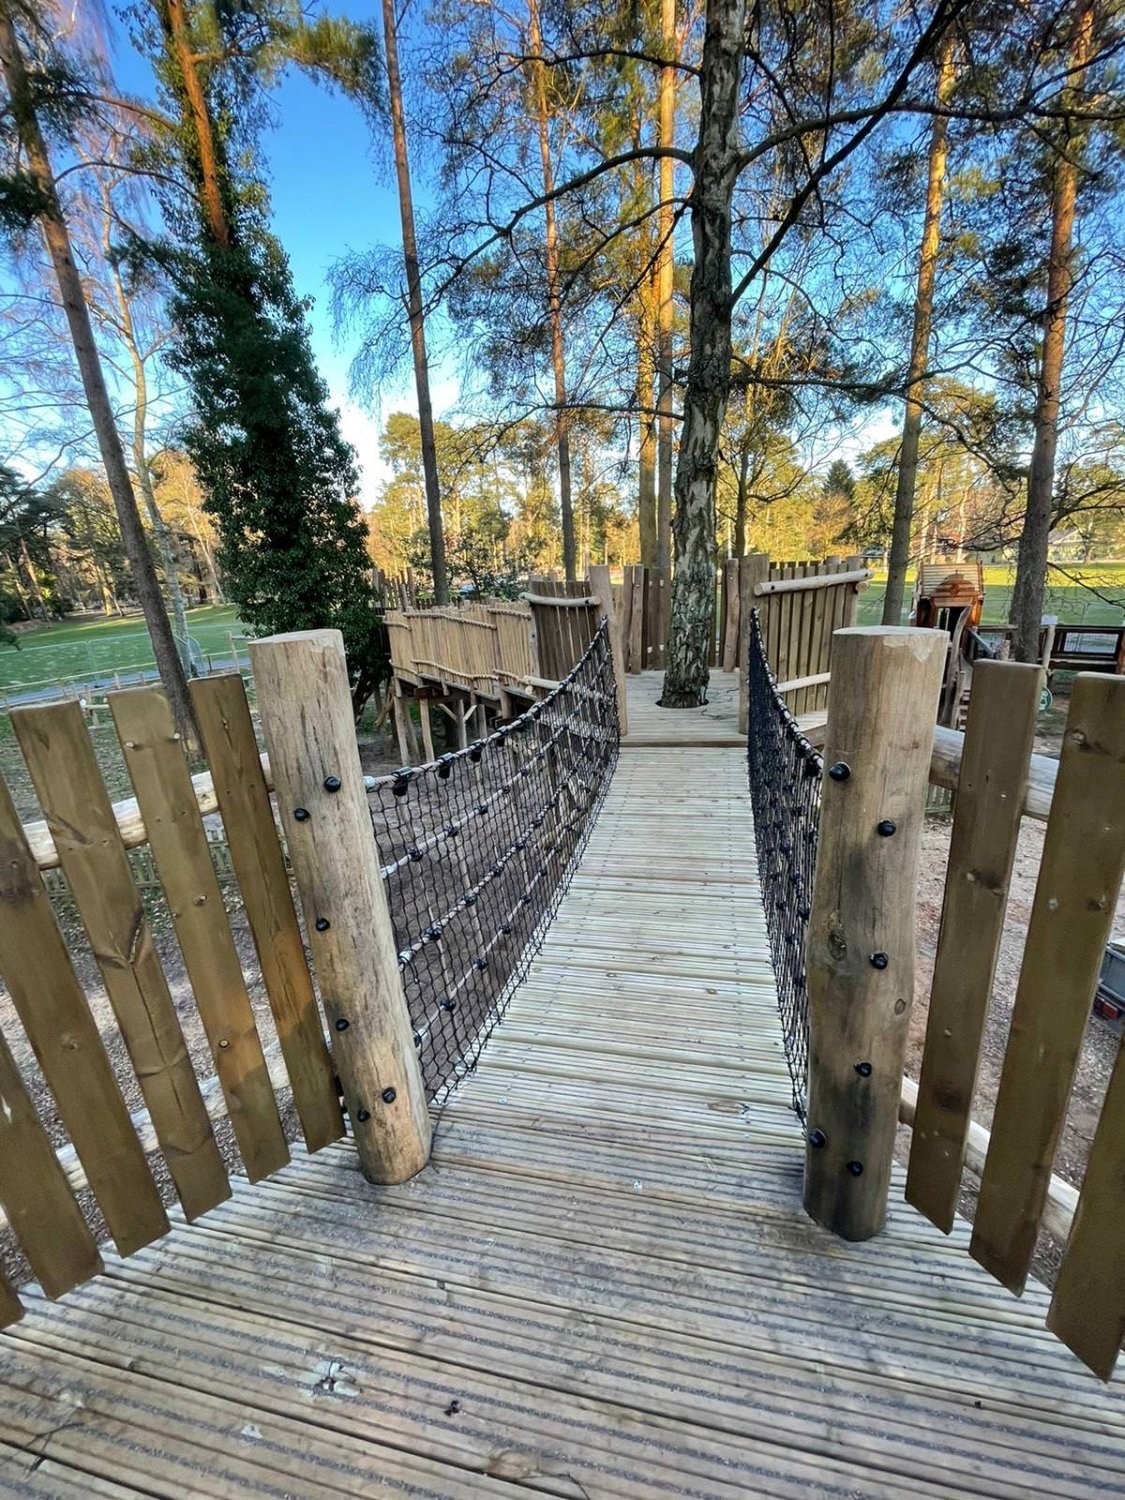 The new adventure play area at Sandringham by CAP.Co across one of the walkways